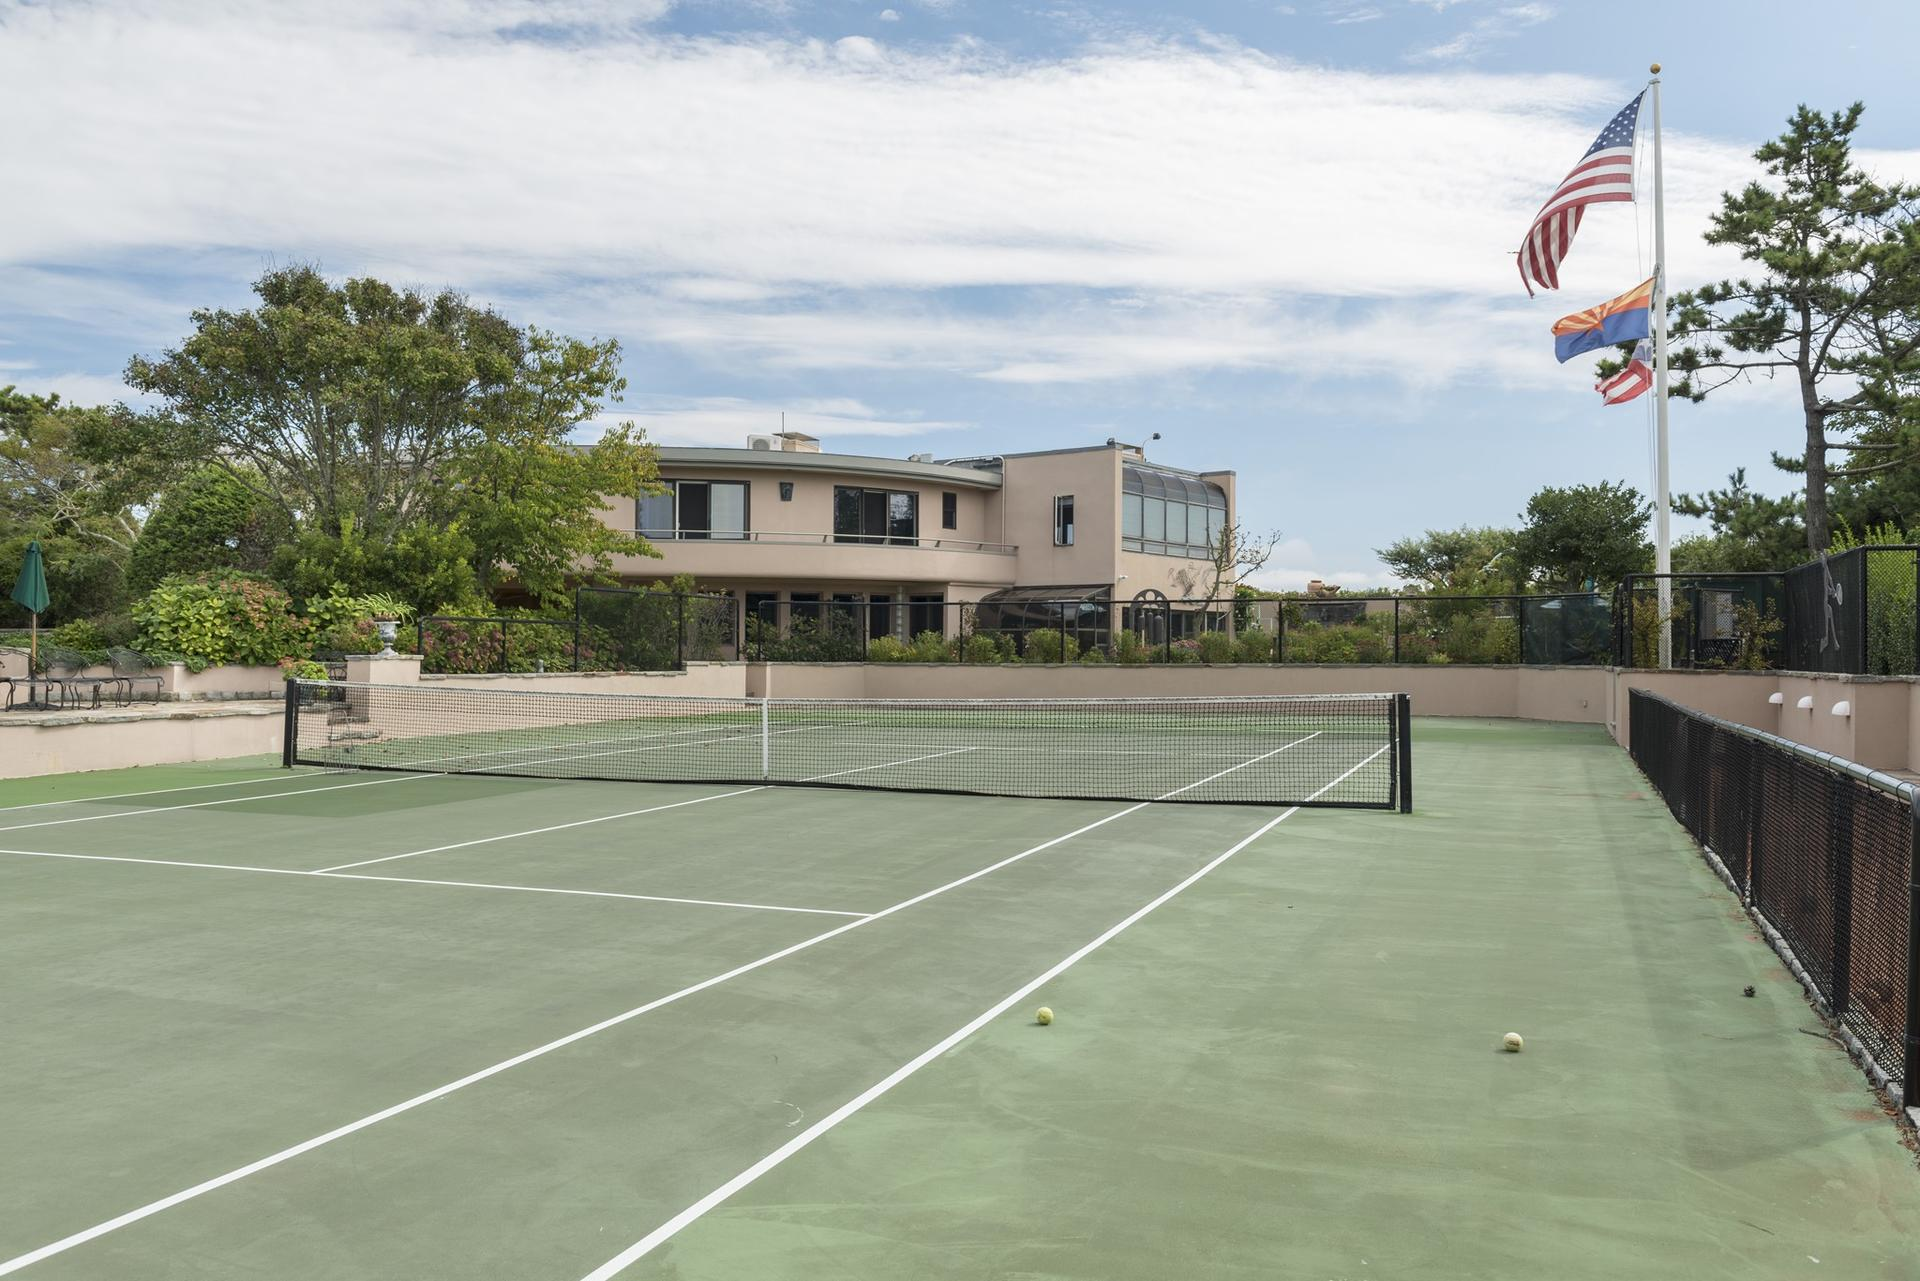 Additional photo for property listing at Oceanfront Rental With Tennis On Gin Lane  Southampton, New York